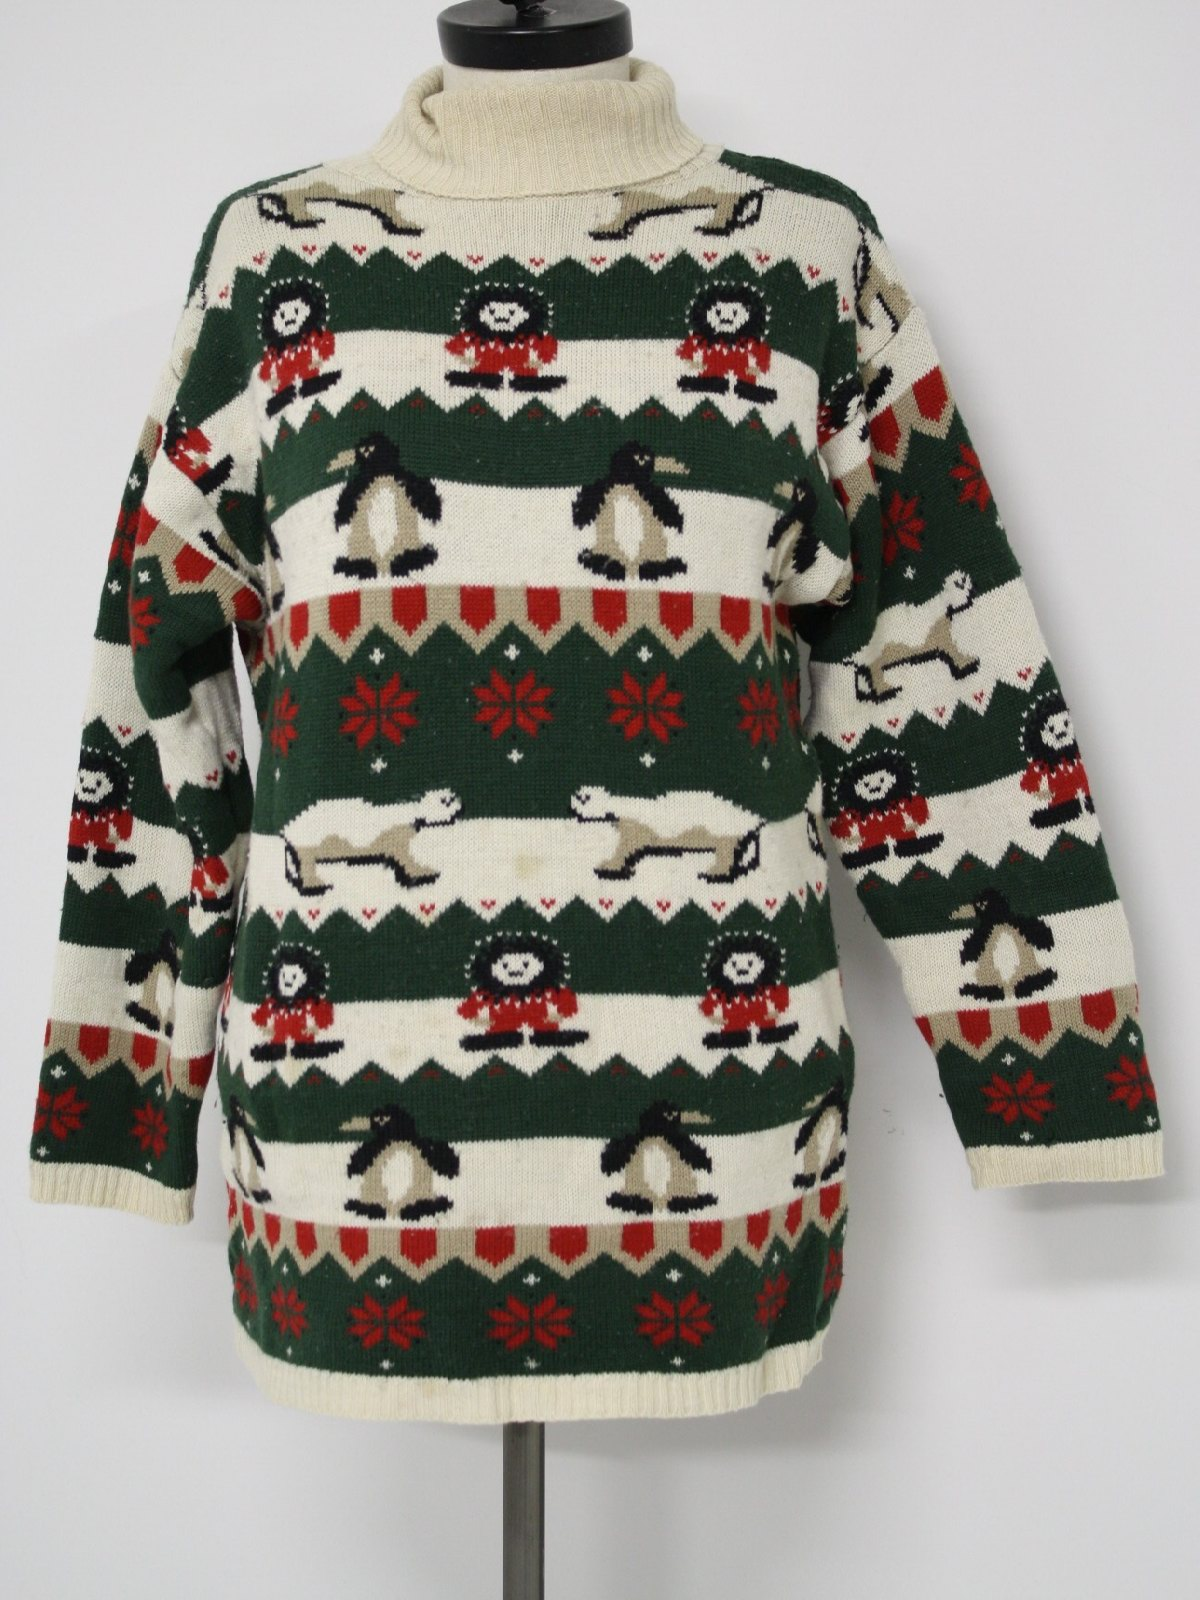 Womens Ugly Christmas Sweater: -Prides Landing- Womens off-white ...